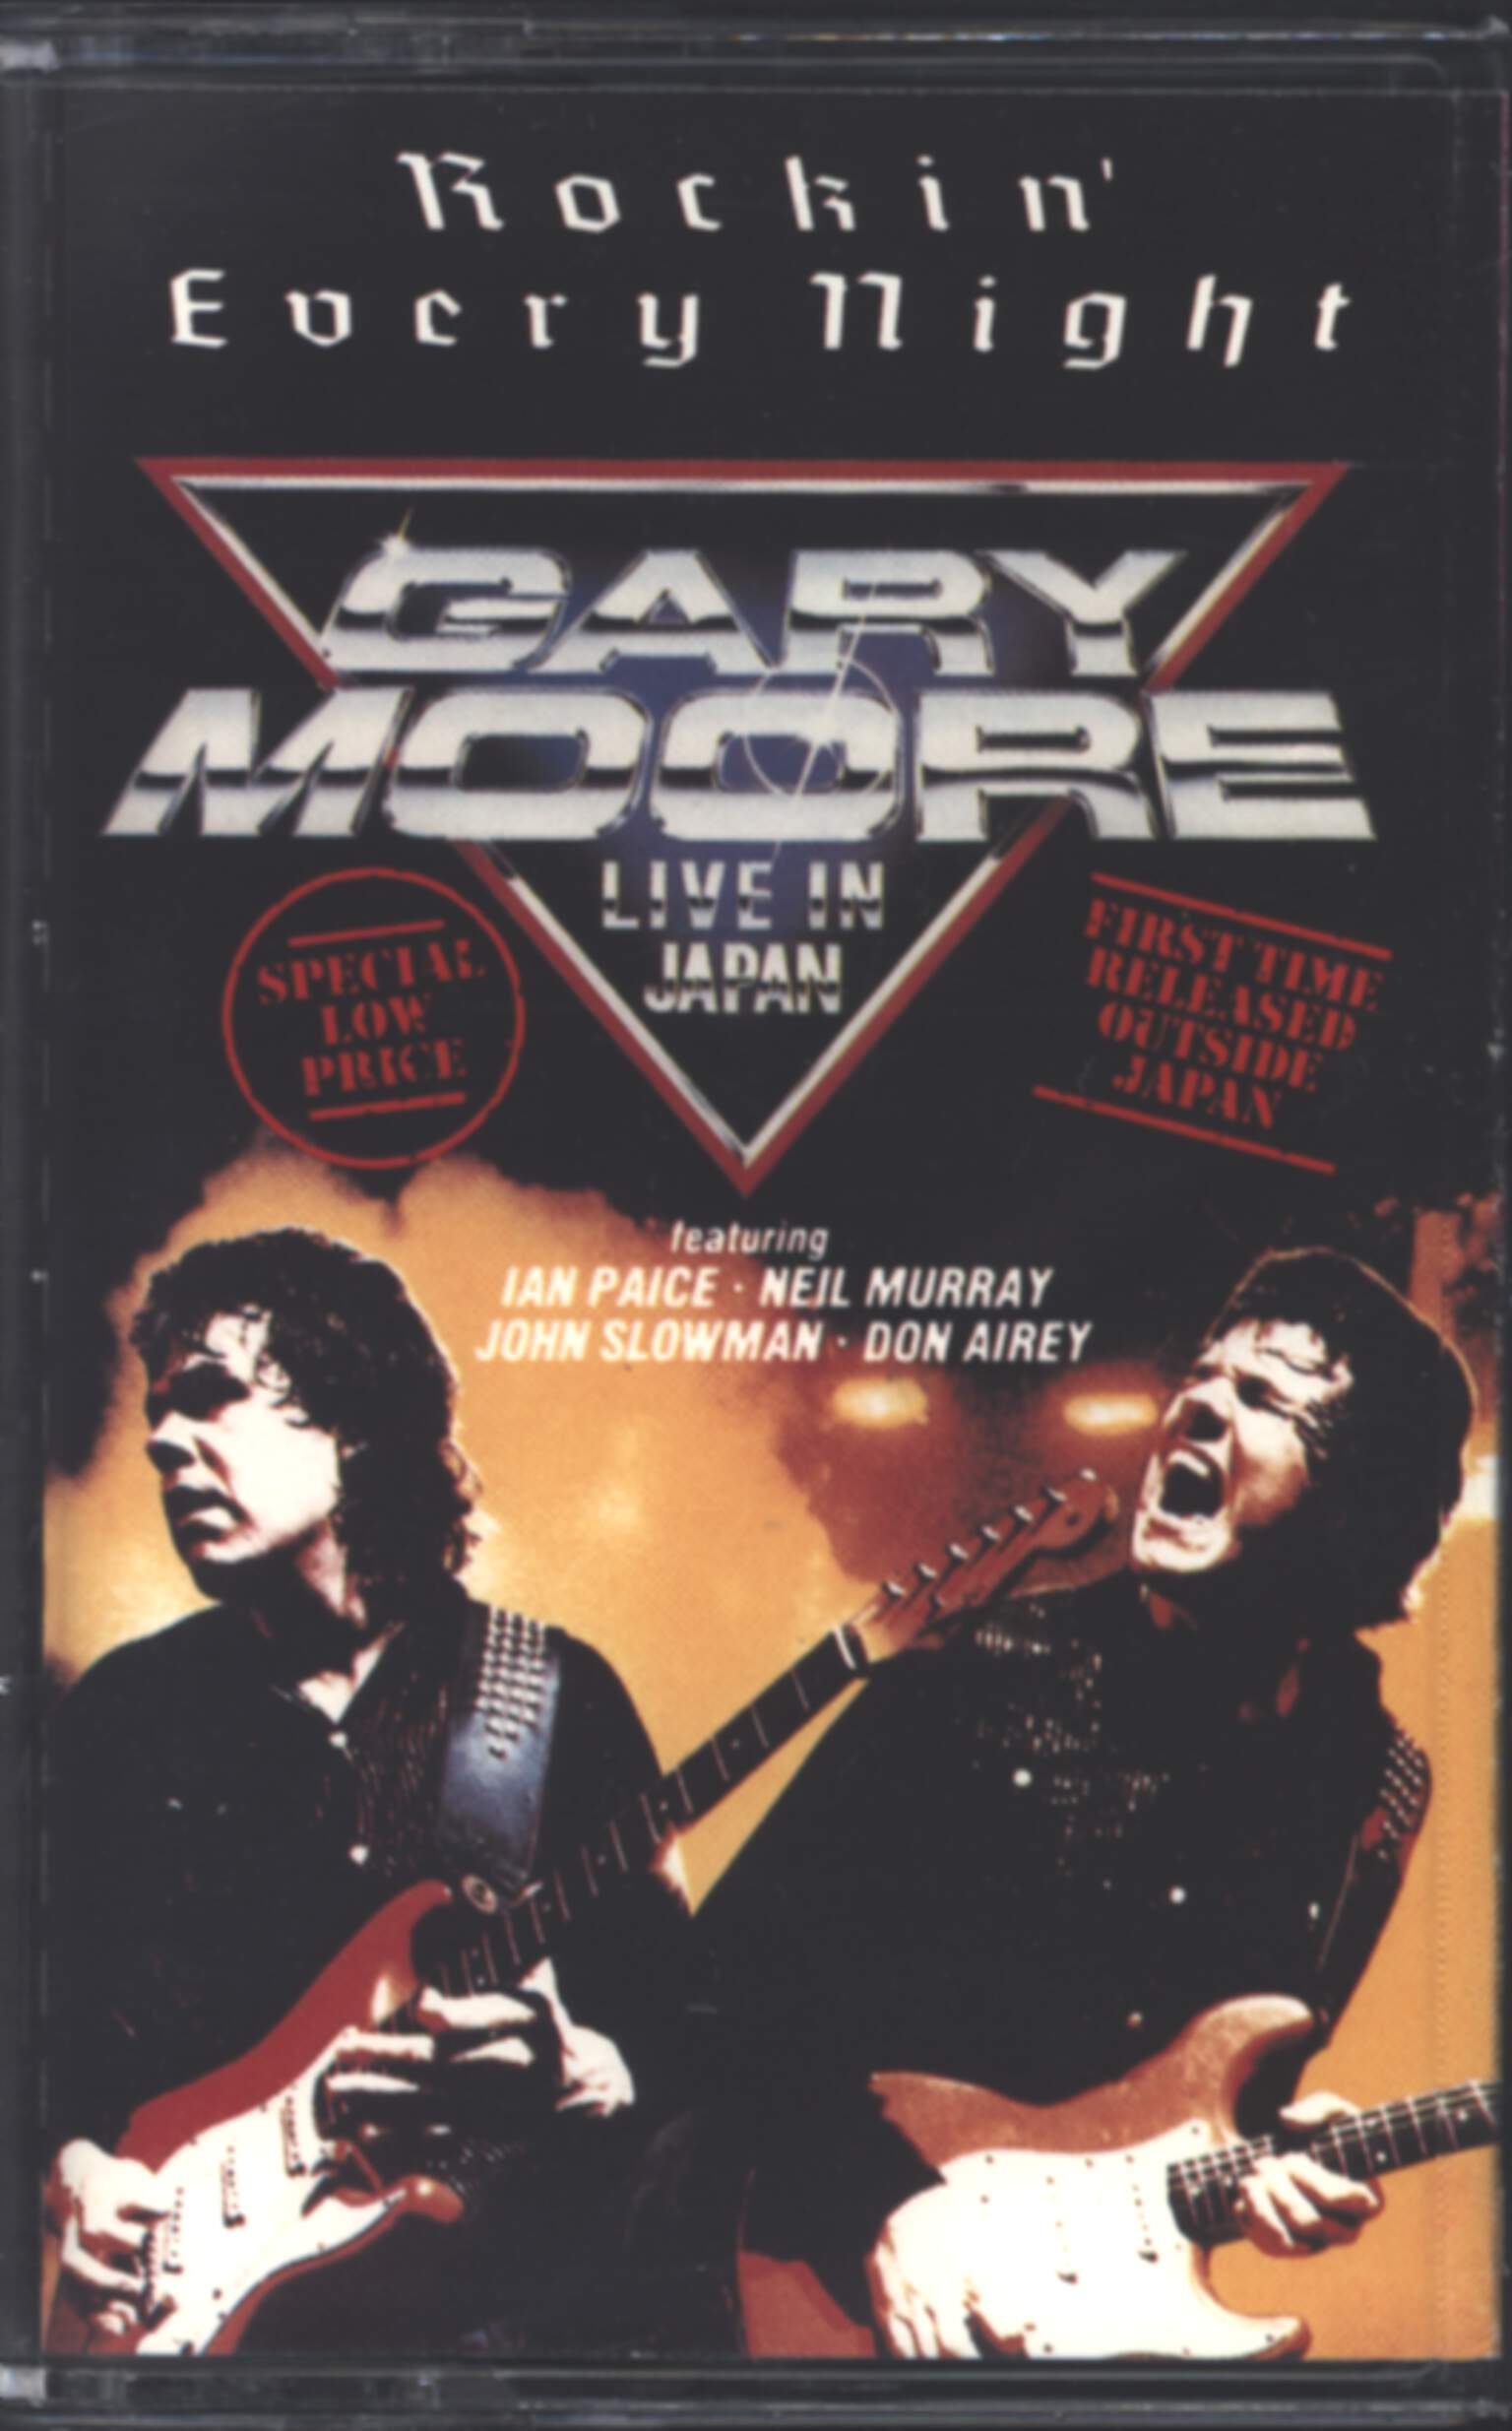 Gary Moore: Rockin' Every Night - Live In Japan, Compact Cassette